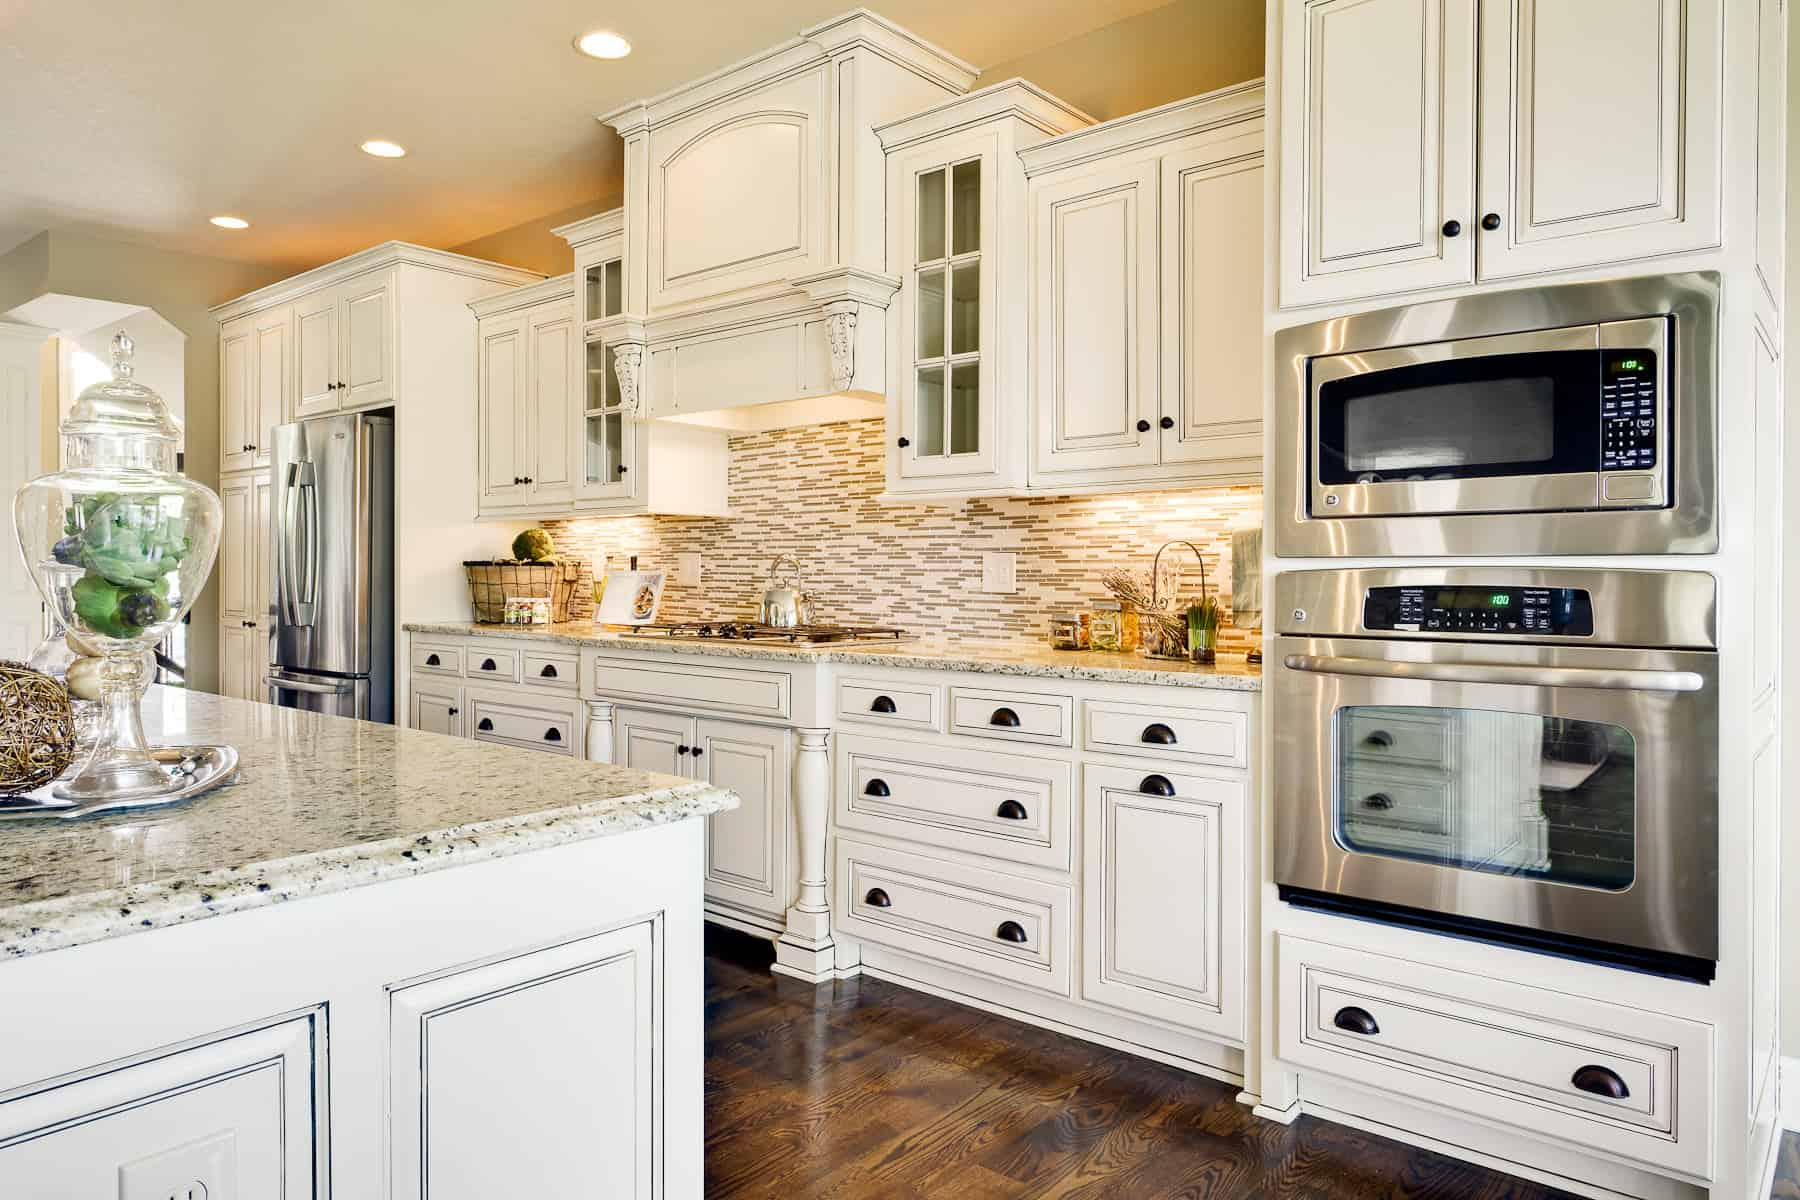 granite countertops cost white kitchen countertops White Granite Countertops